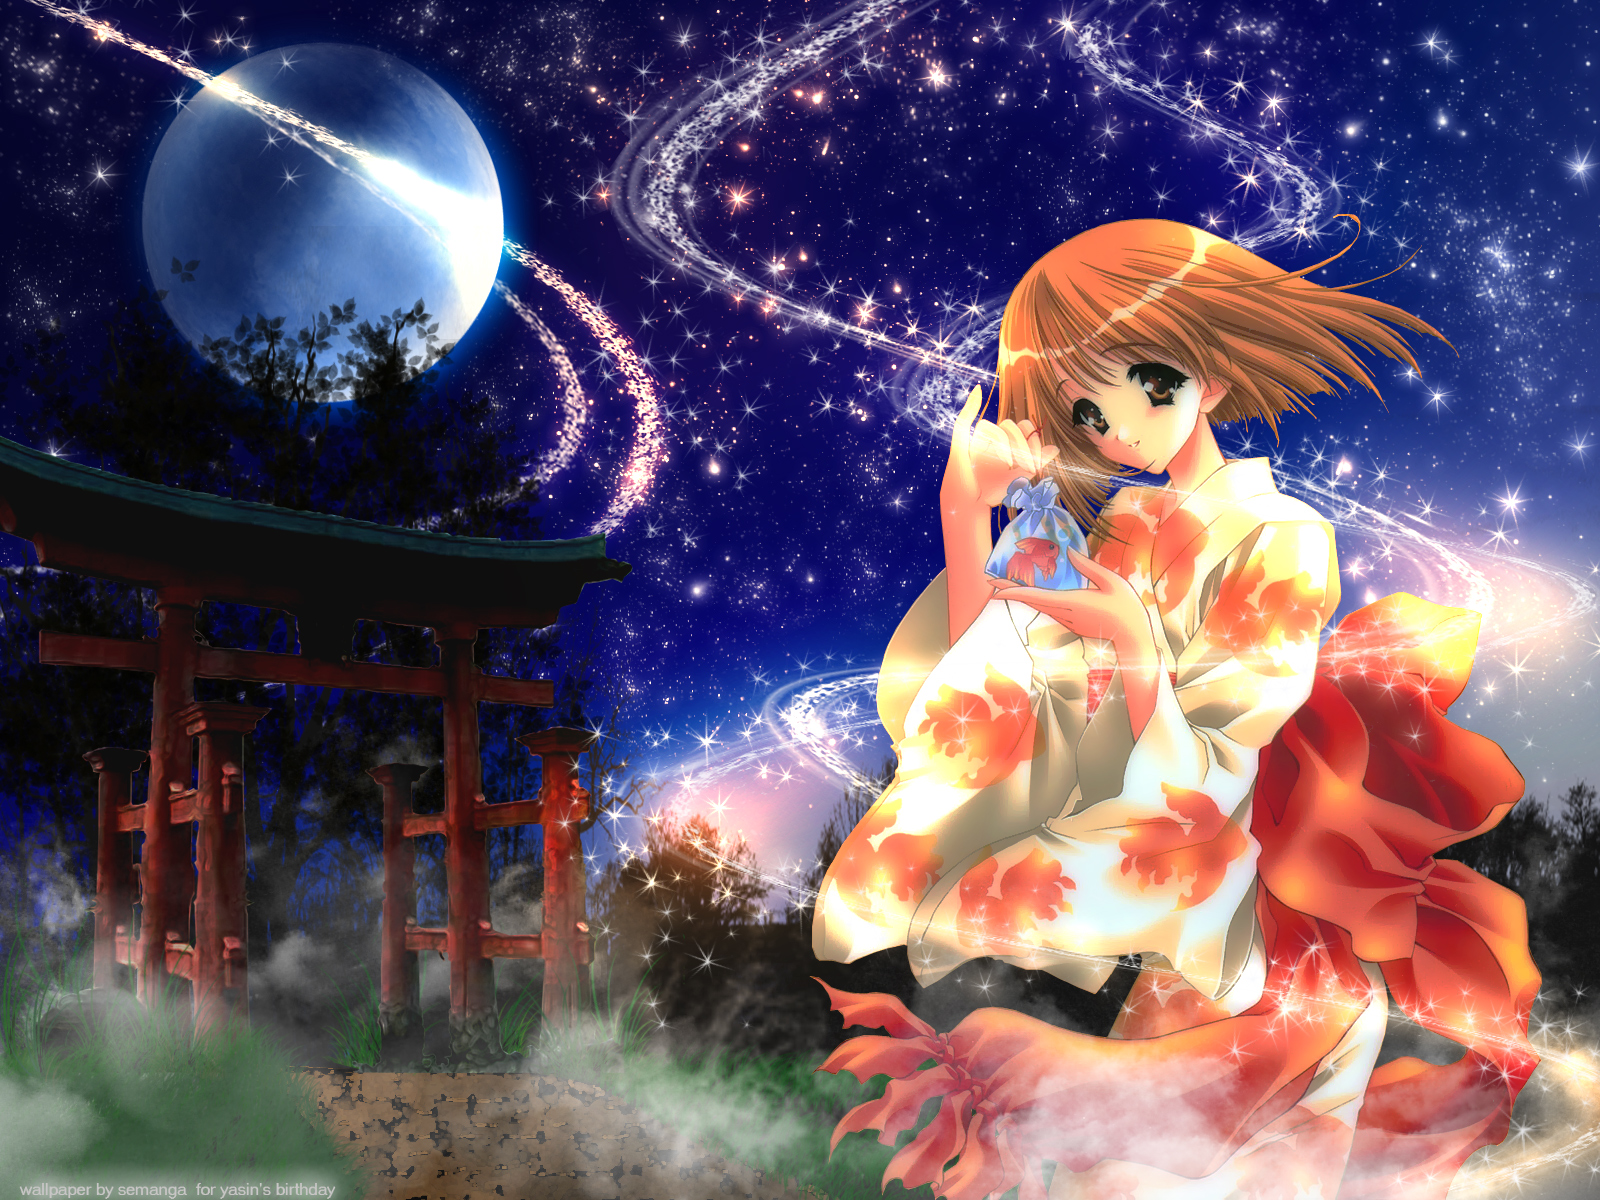 High Definition Wallpapers: Anime Wallpapers